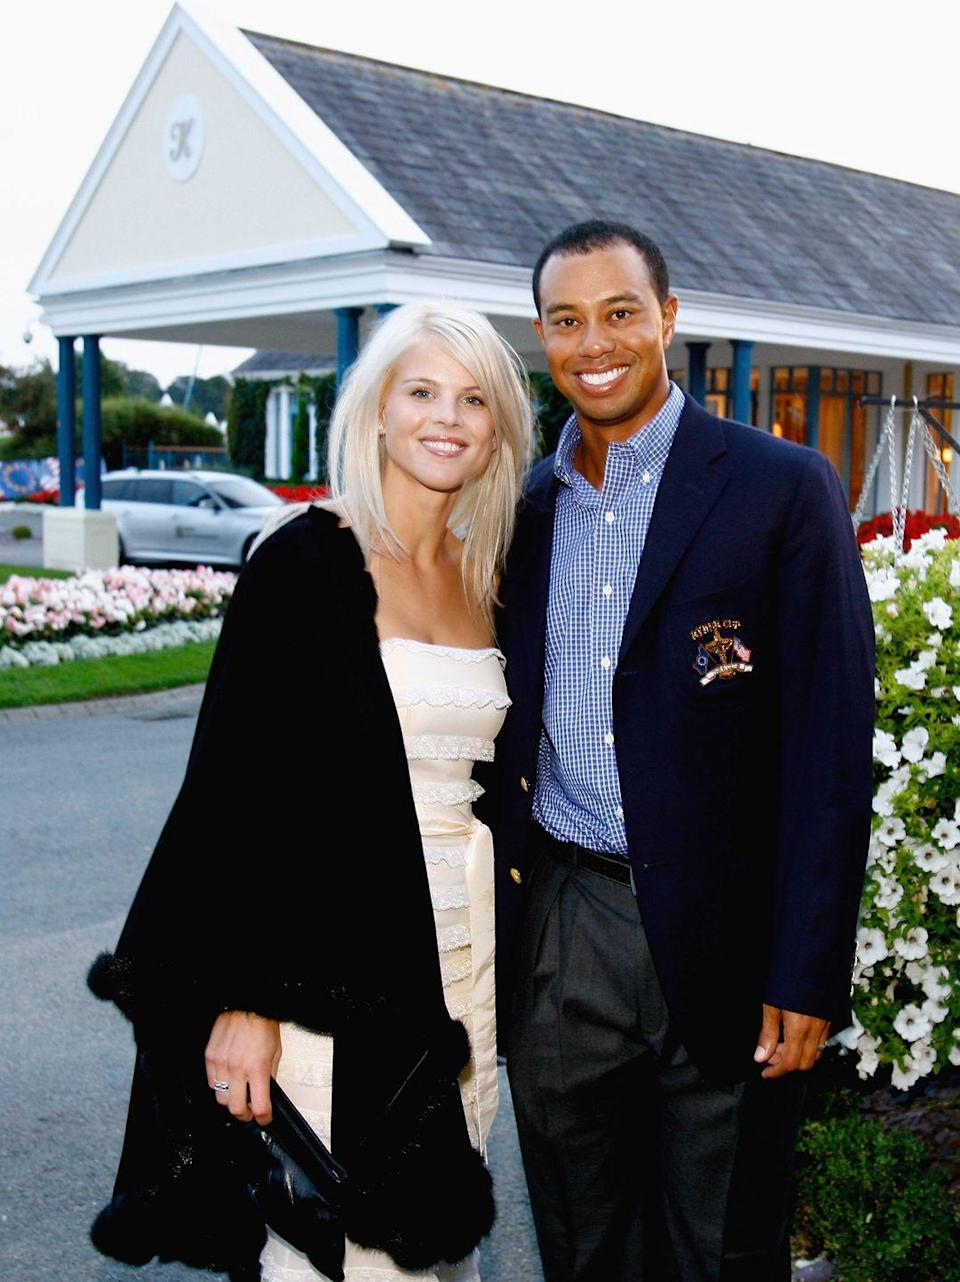 "<p>Before their headline-making divorce in 2010, Tiger Woods and Elin Nordegren had a $1.5 million sunset <a href=""https://www.latimes.com/archives/la-xpm-2004-oct-07-sp-tiger7-story.html#:~:text=Tiger%20Woods%20married%20Swedish%20model,ceremony%20reportedly%20cost%20%241.5%20million."" rel=""nofollow noopener"" target=""_blank"" data-ylk=""slk:ceremony"" class=""link rapid-noclick-resp"">ceremony</a> at an exclusive resort in Barbados. The pair rented out the entire hotel (around 200 rooms, NBD) and even had 500 roses imported for the nuptials. </p>"